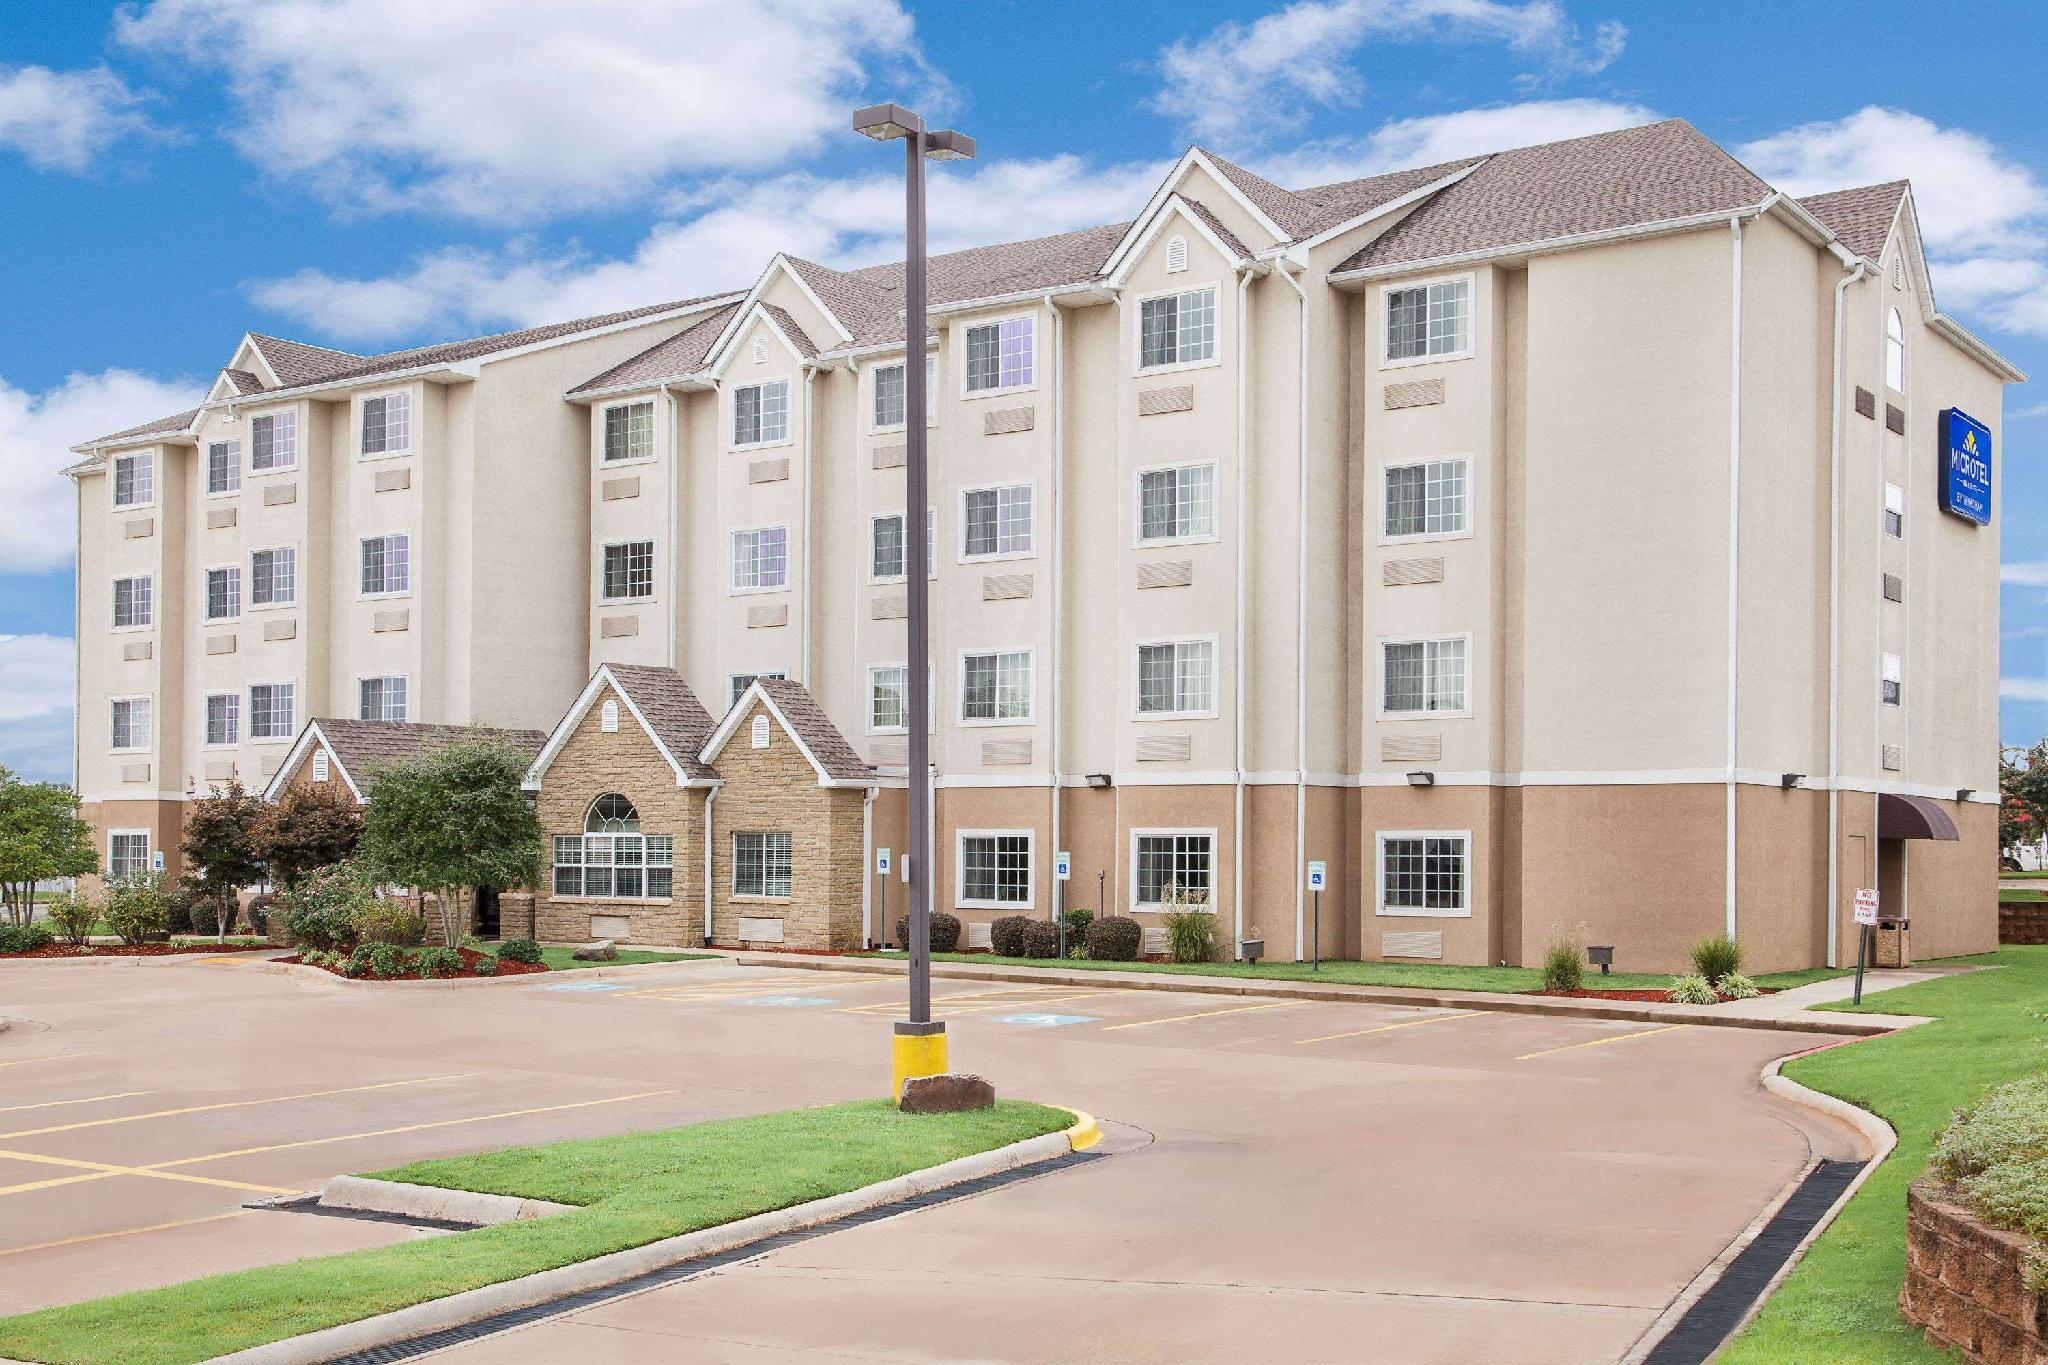 Microtel Inn And Suites By Wyndham Conway